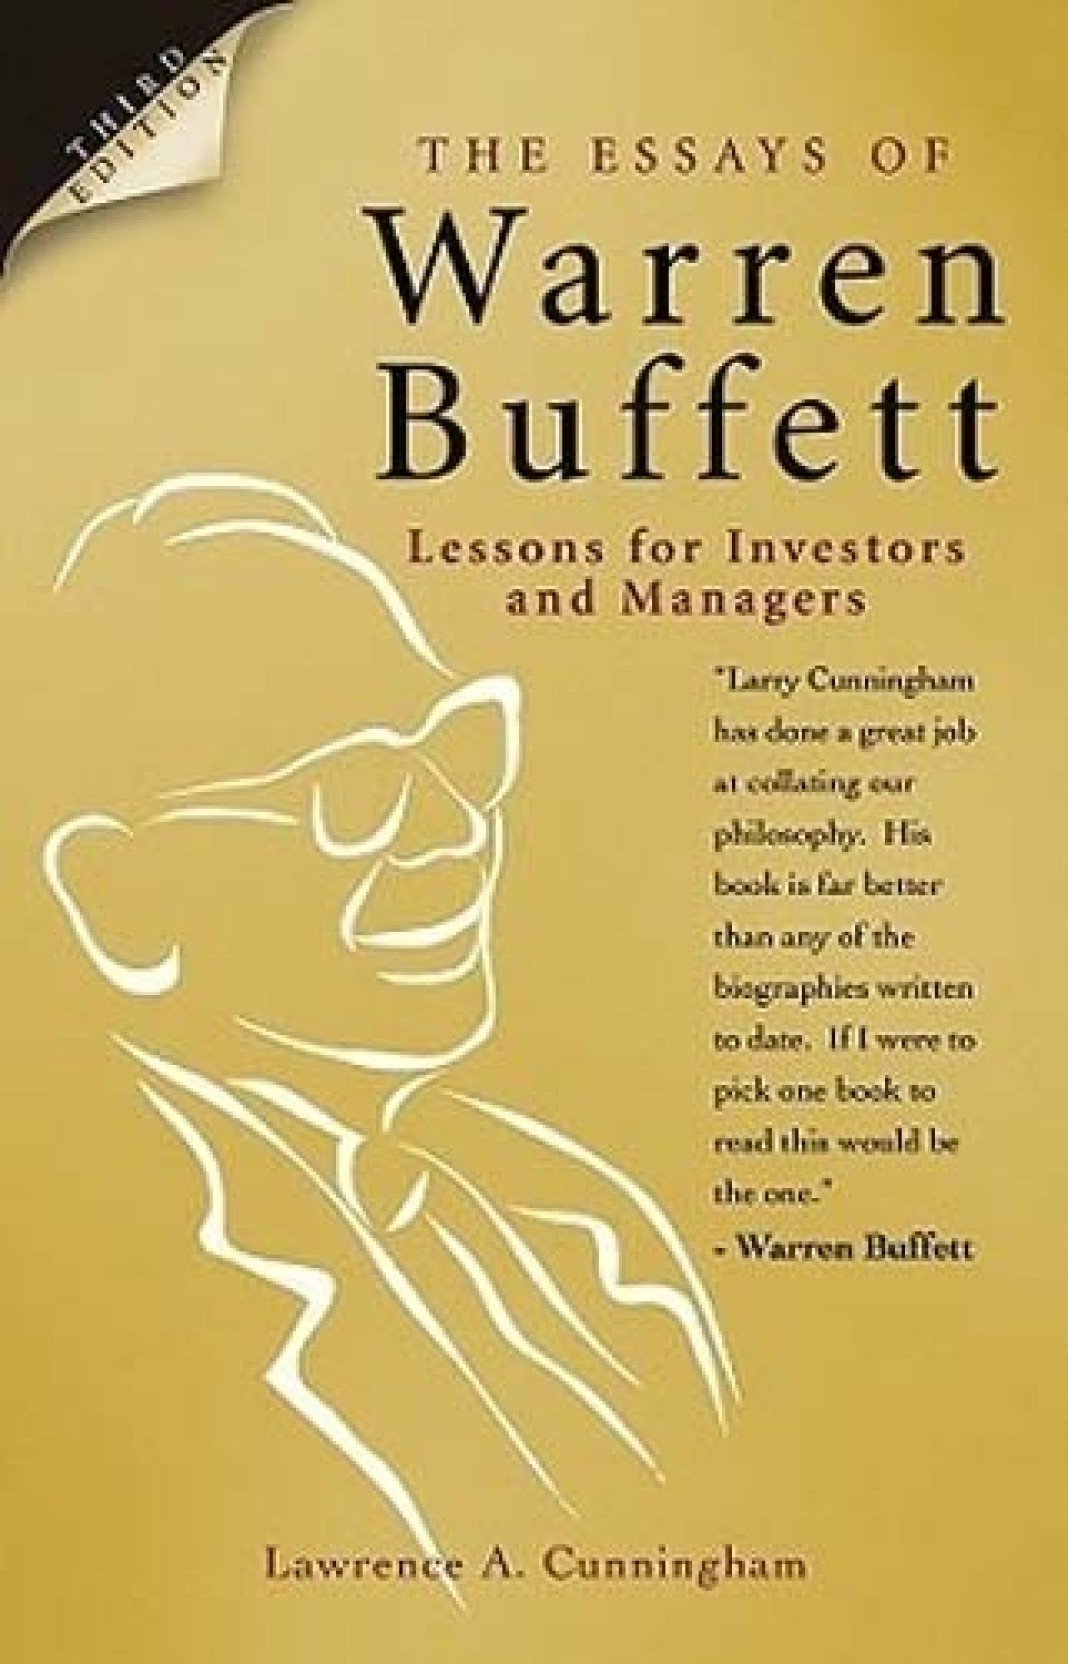 016 Essays Of Warren Buffett Essay Example The Lessons For Investors And Managers Original Top 4th Edition Pdf Free Full